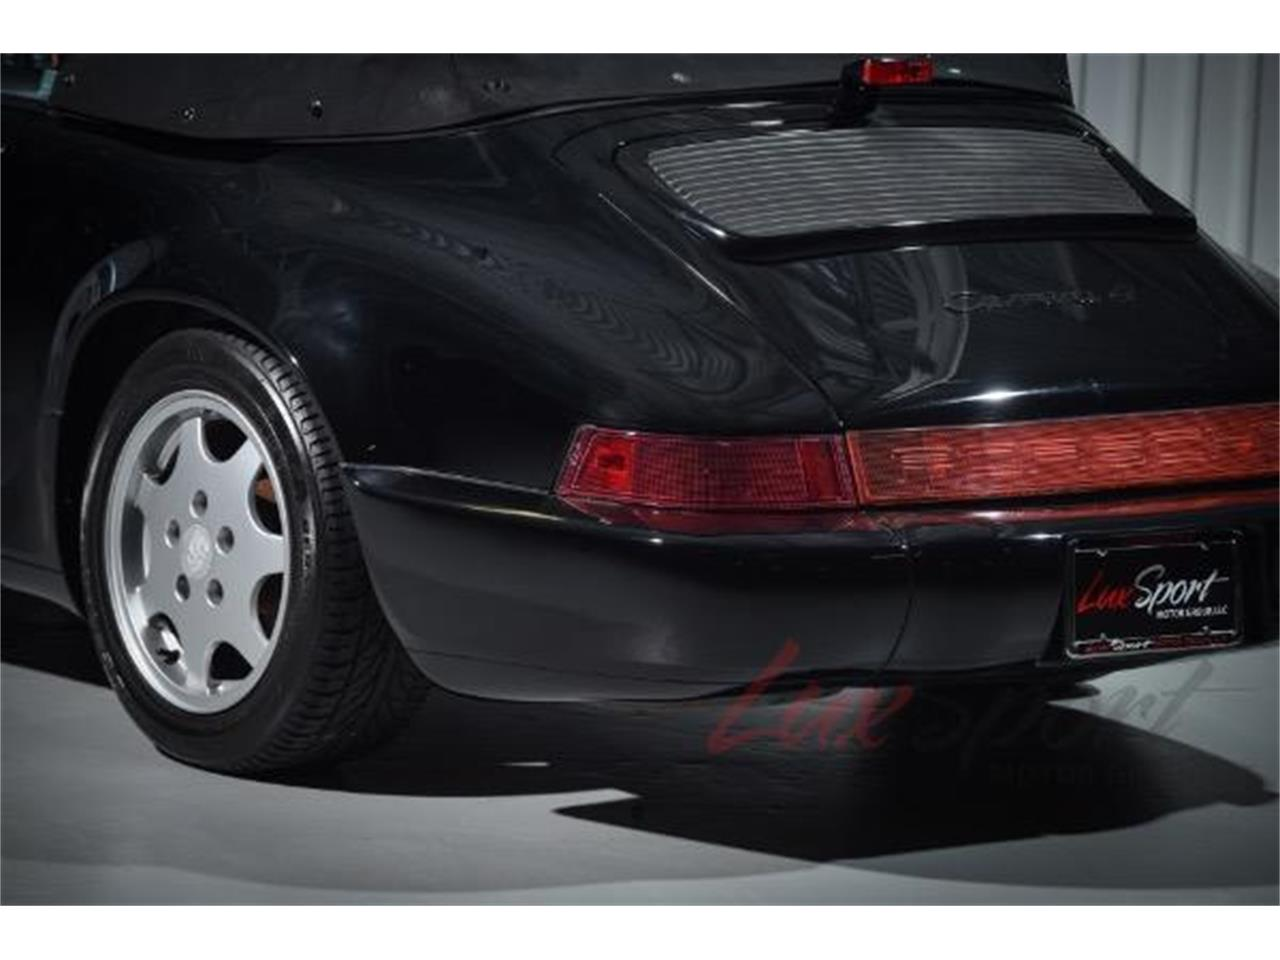 Large Picture of 1990 964 Carrera 4 Cabriolet - $39,995.00 Offered by LuxSport Motor Group, LLC - MGT0